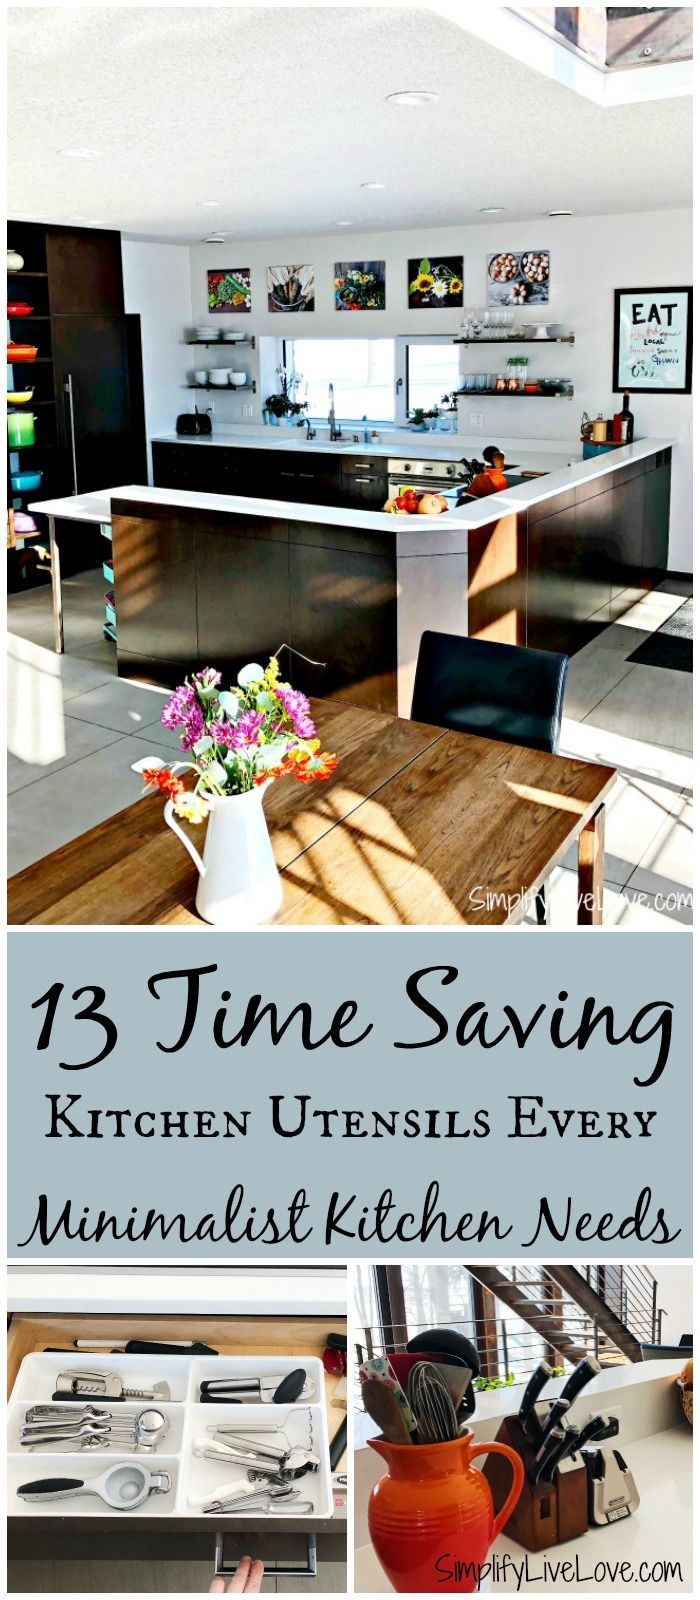 A minimalist kitchen can help you save money and time, not just on ...